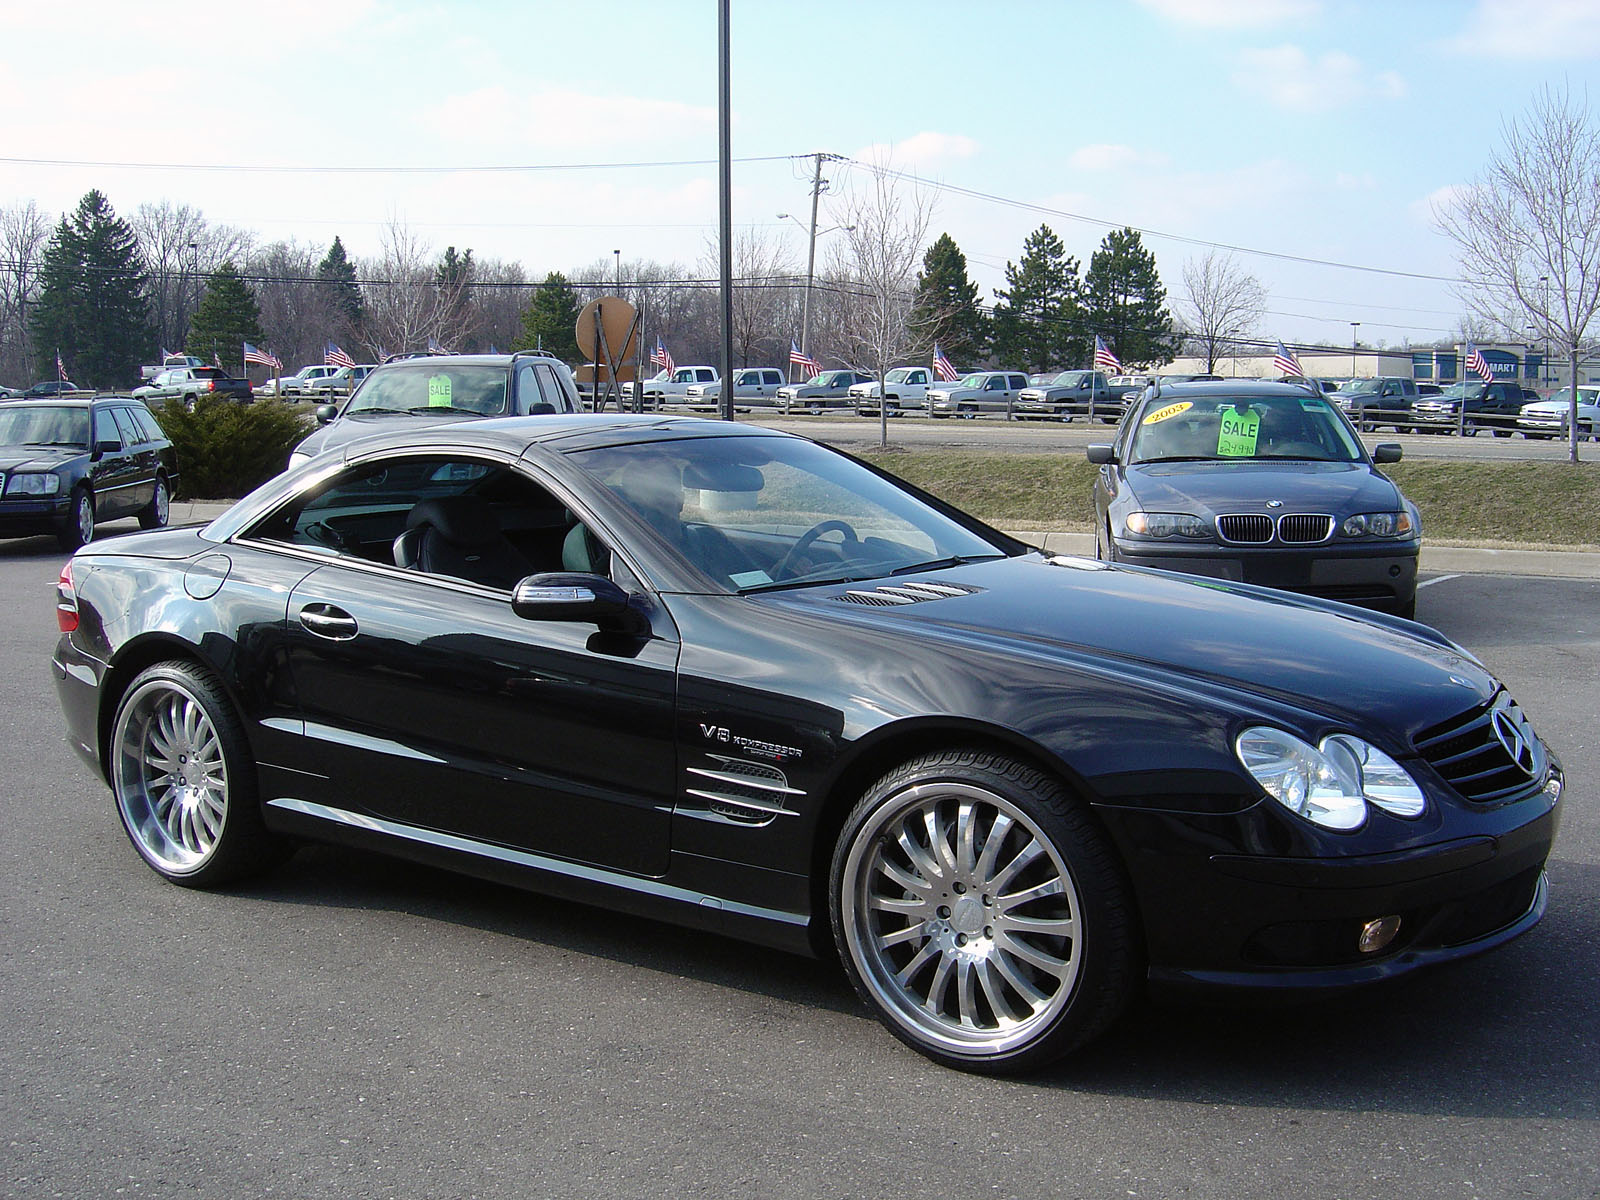 2004 mercedes benz sl class pictures cargurus for Mercedes benz sl55